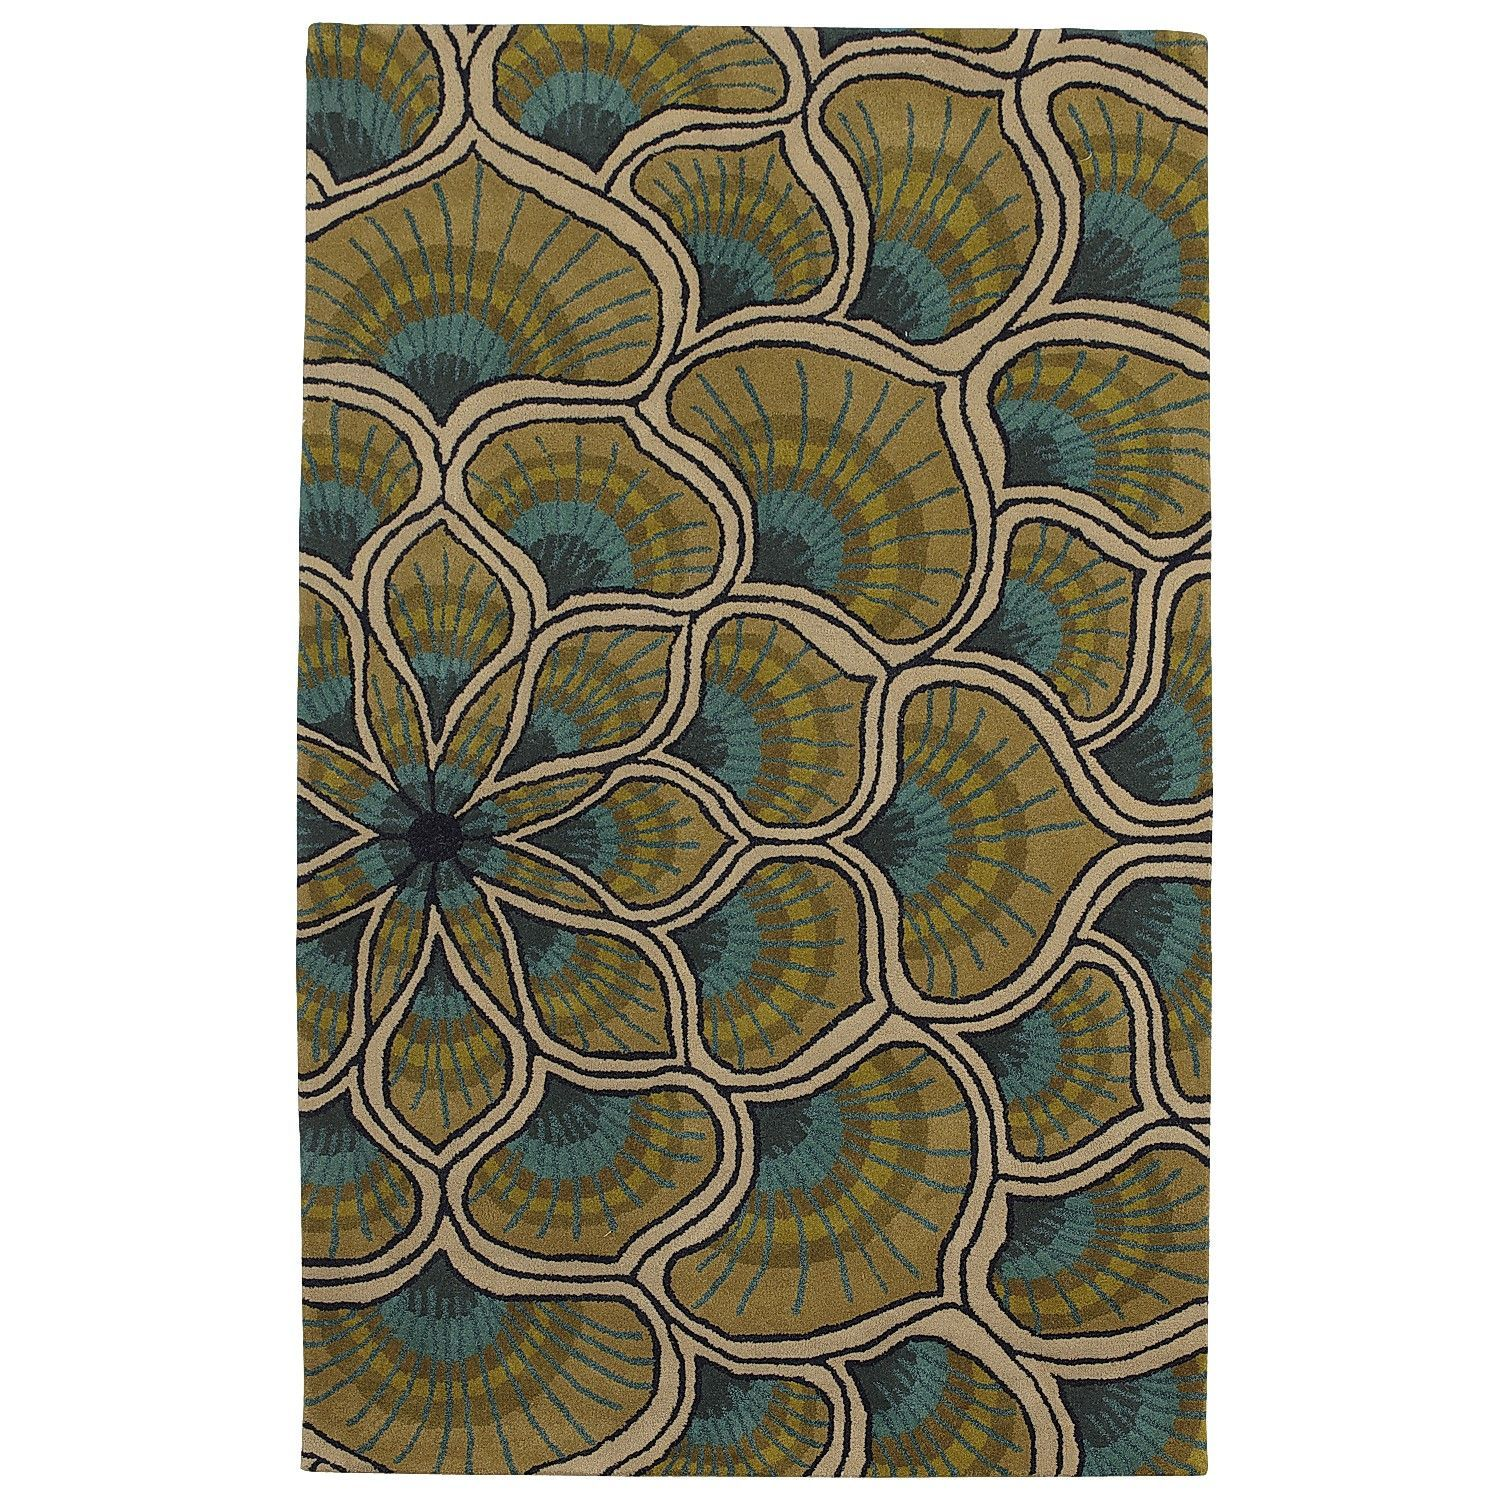 Peacock Plume Rugs Pier 1 Imports Peacock Decor Rug Sale